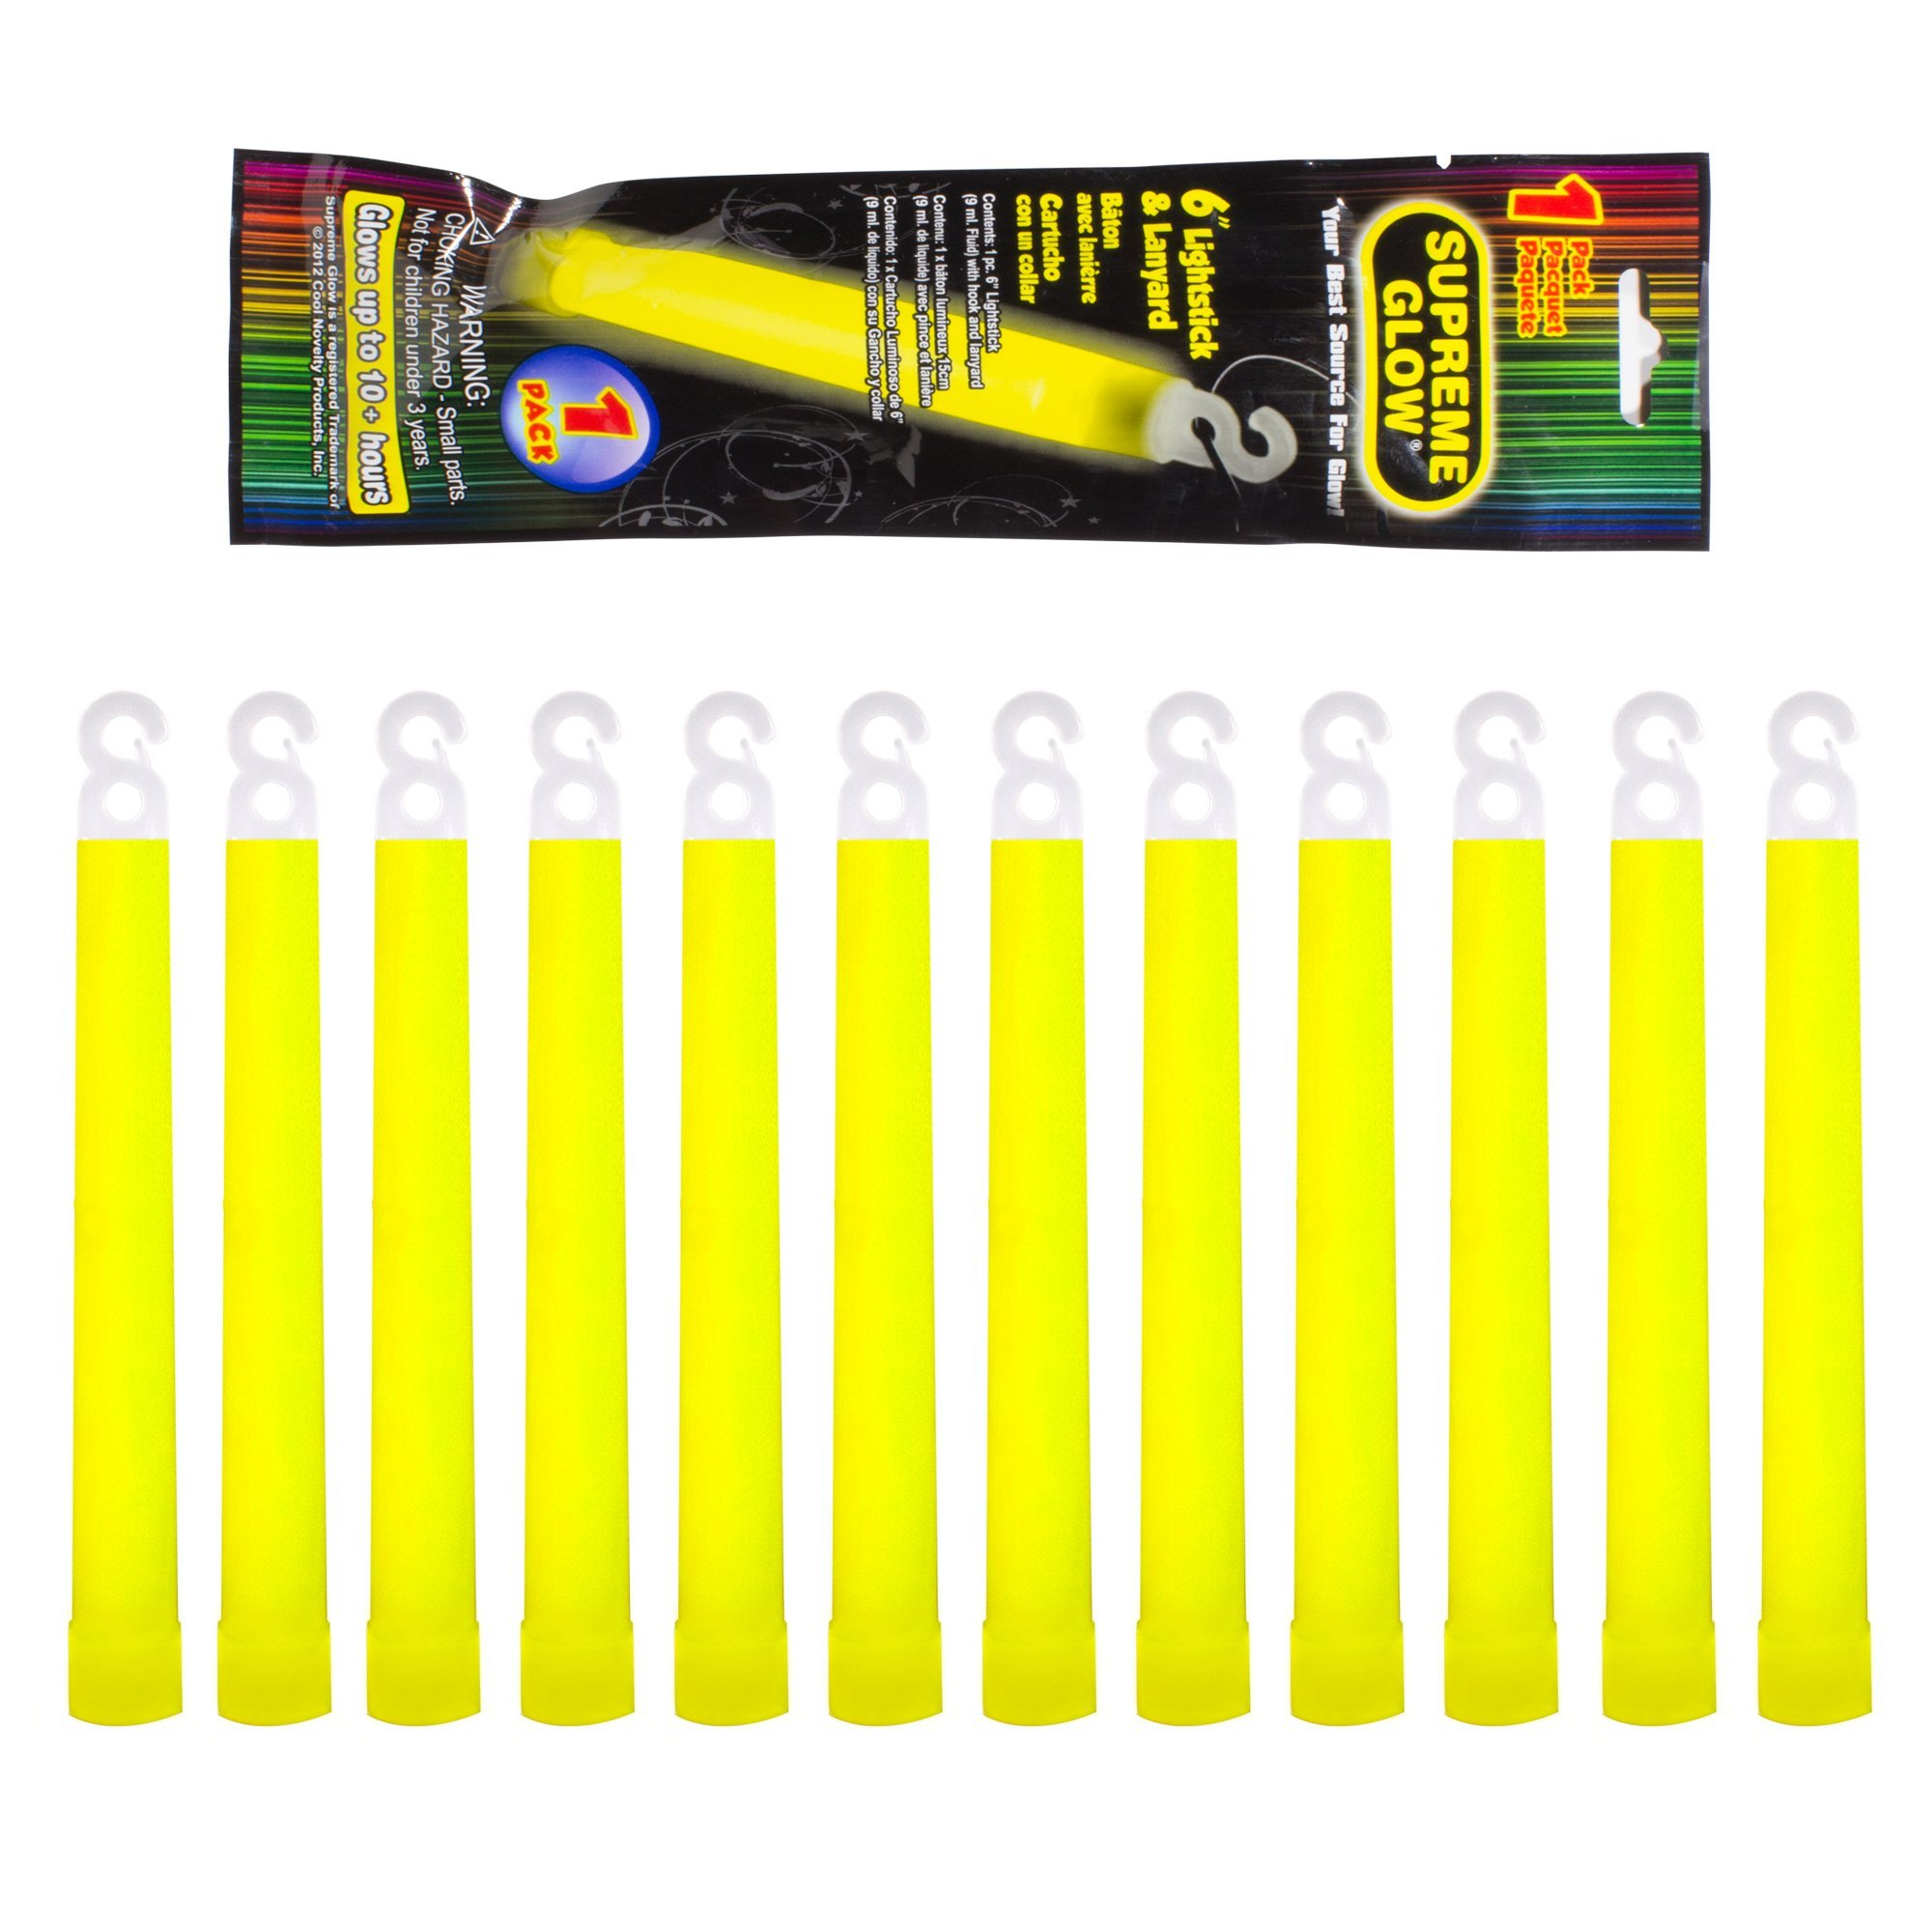 Industrial Grade 12 hour Illumination Emergency Safety Chemical Light Glow Sticks (12 Pack)